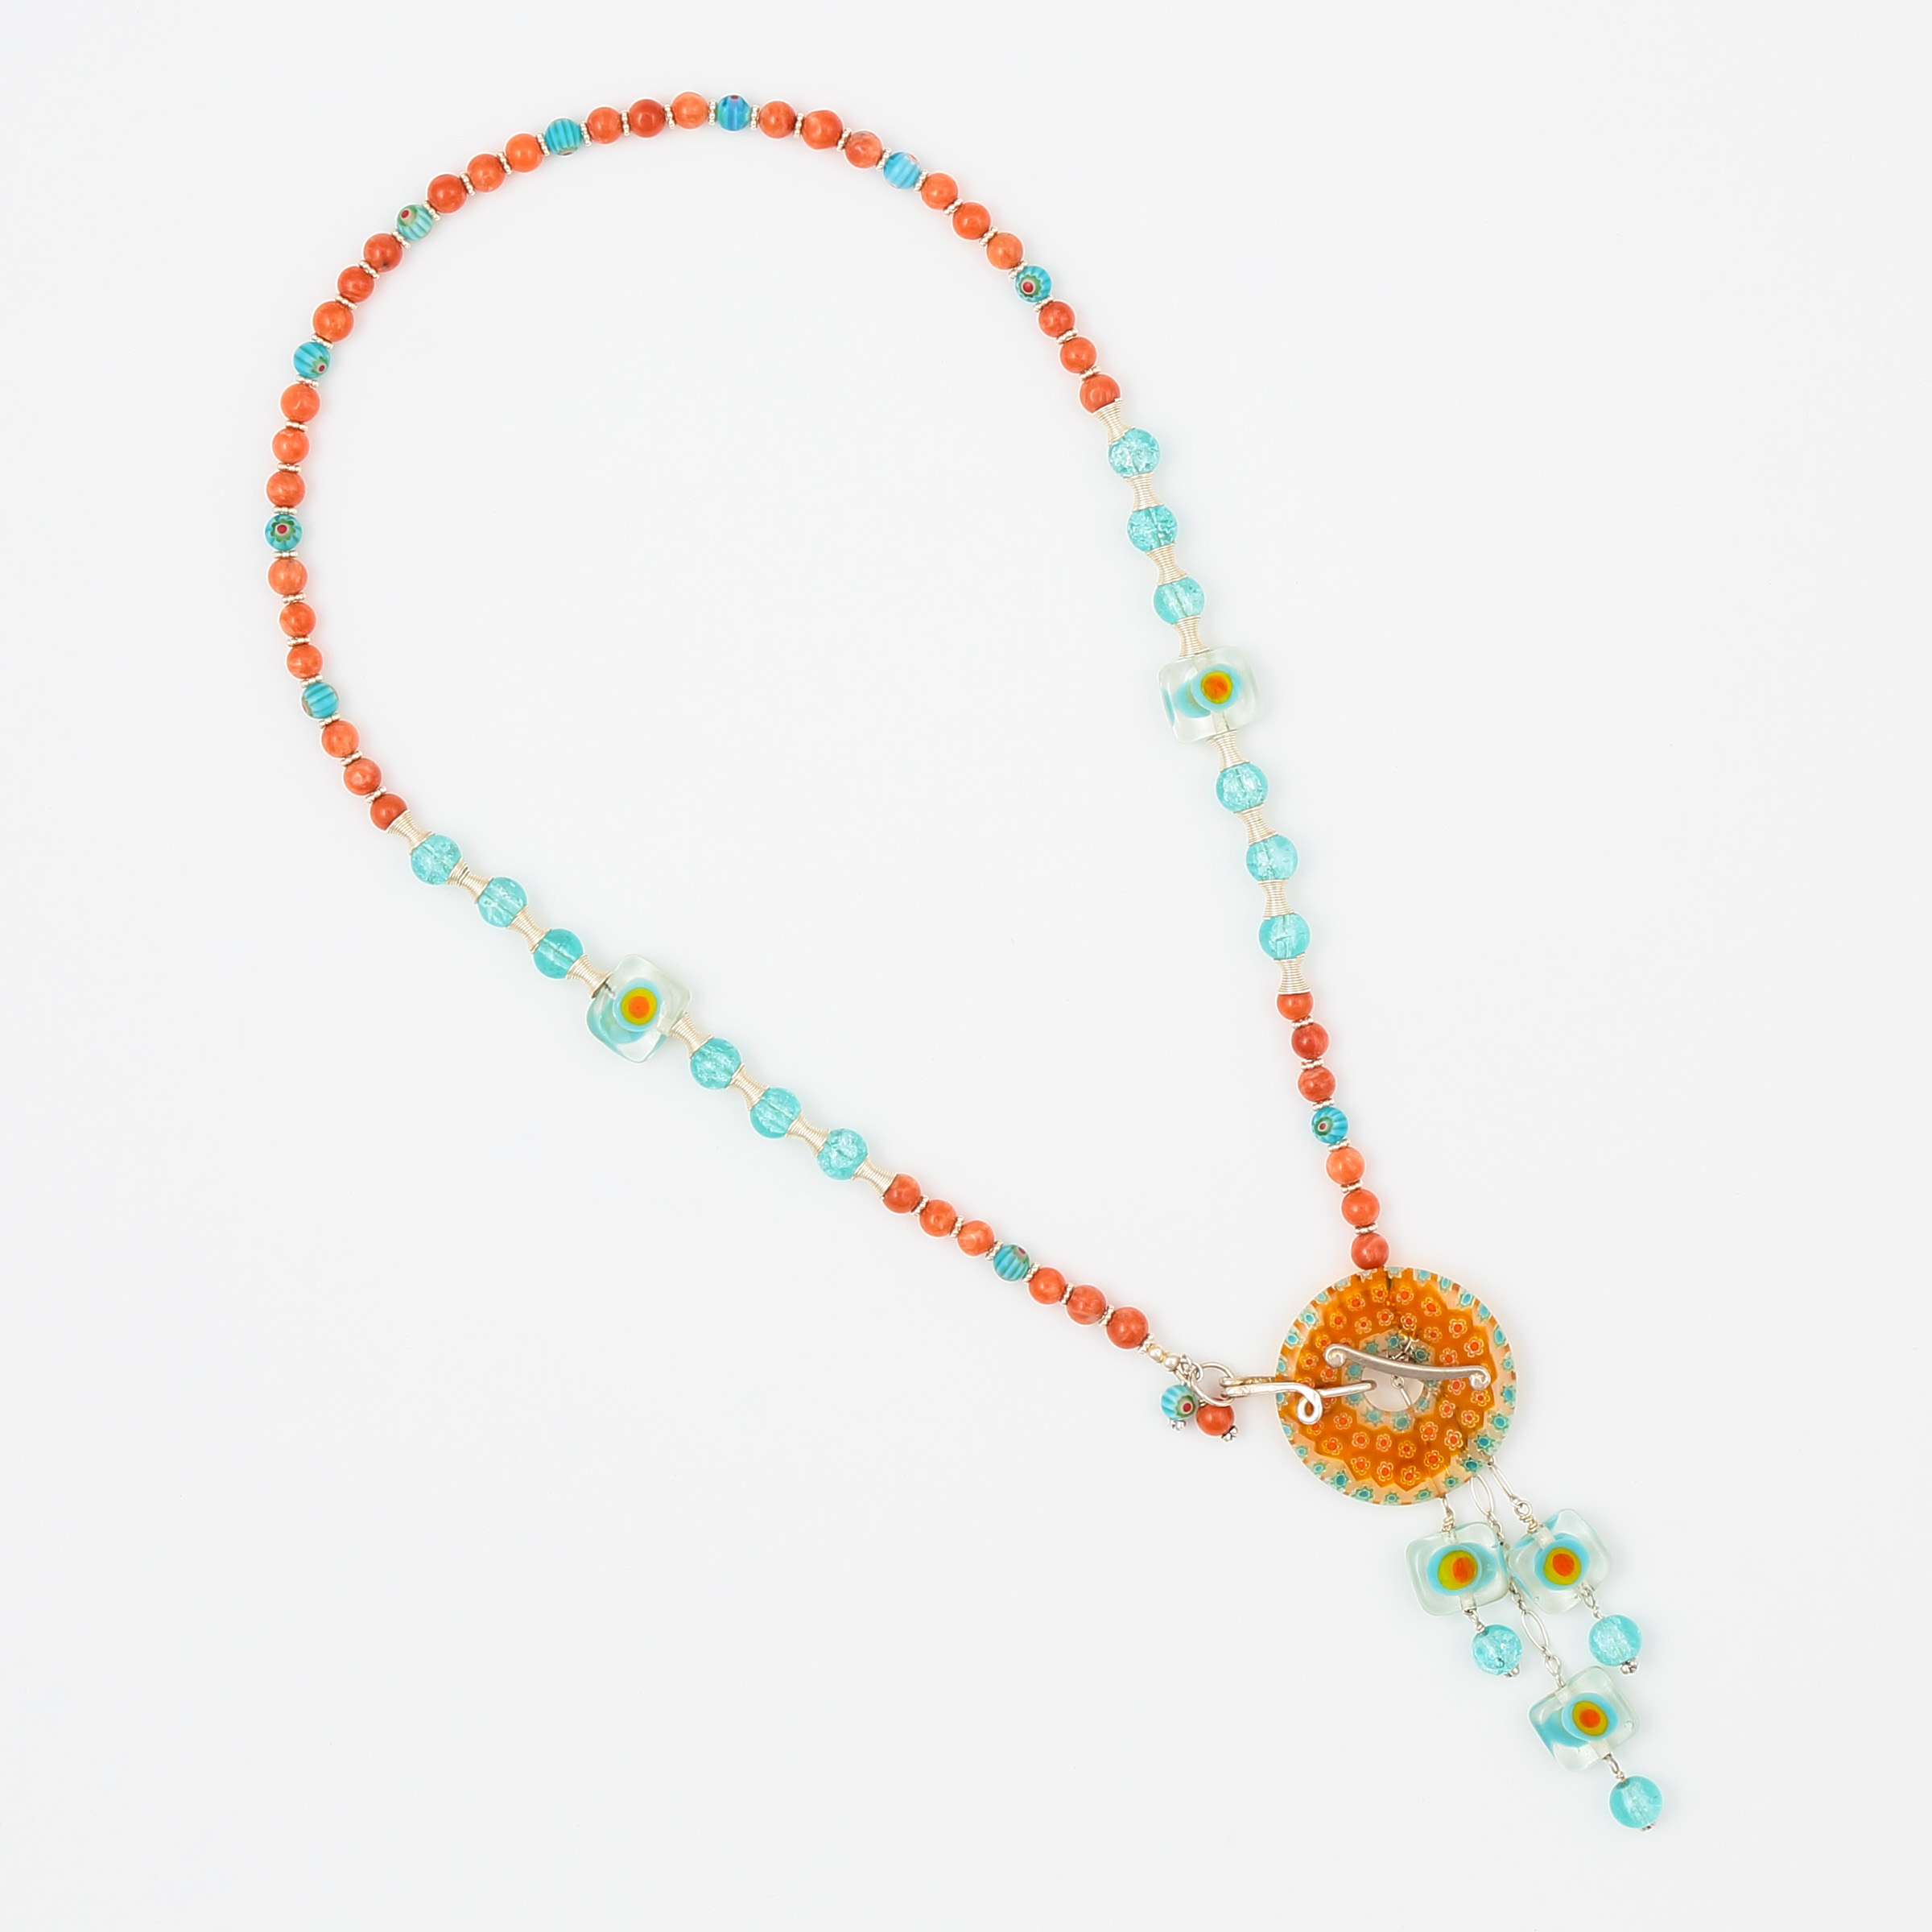 JAZZ CARIBBEAN NECKLACE- Orange, turquoise, blue, and white Italian Murano art glass with aventurine gemstone and sterling silver